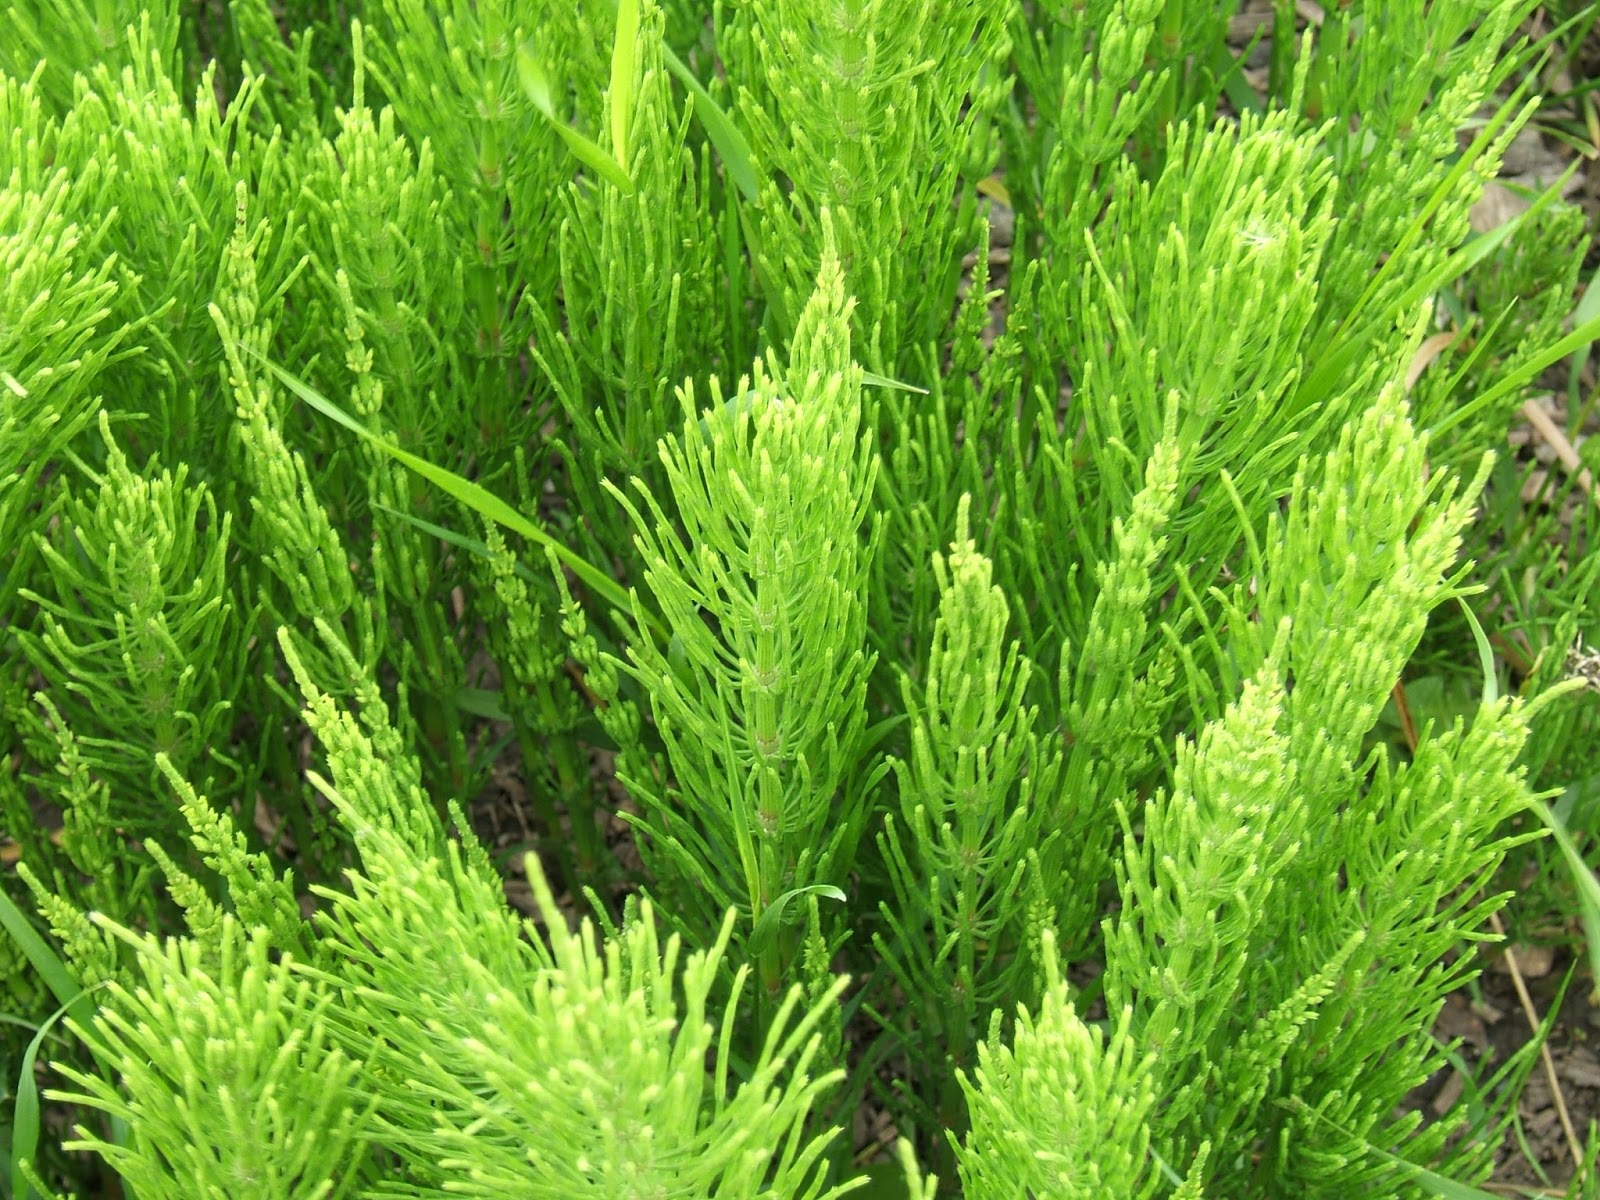 identification of an adulterated herb A component of the medicinal herb ephedra blocks  final rule declaring dietary supplements containing ephedrine alkaloids adulterated because  identification.